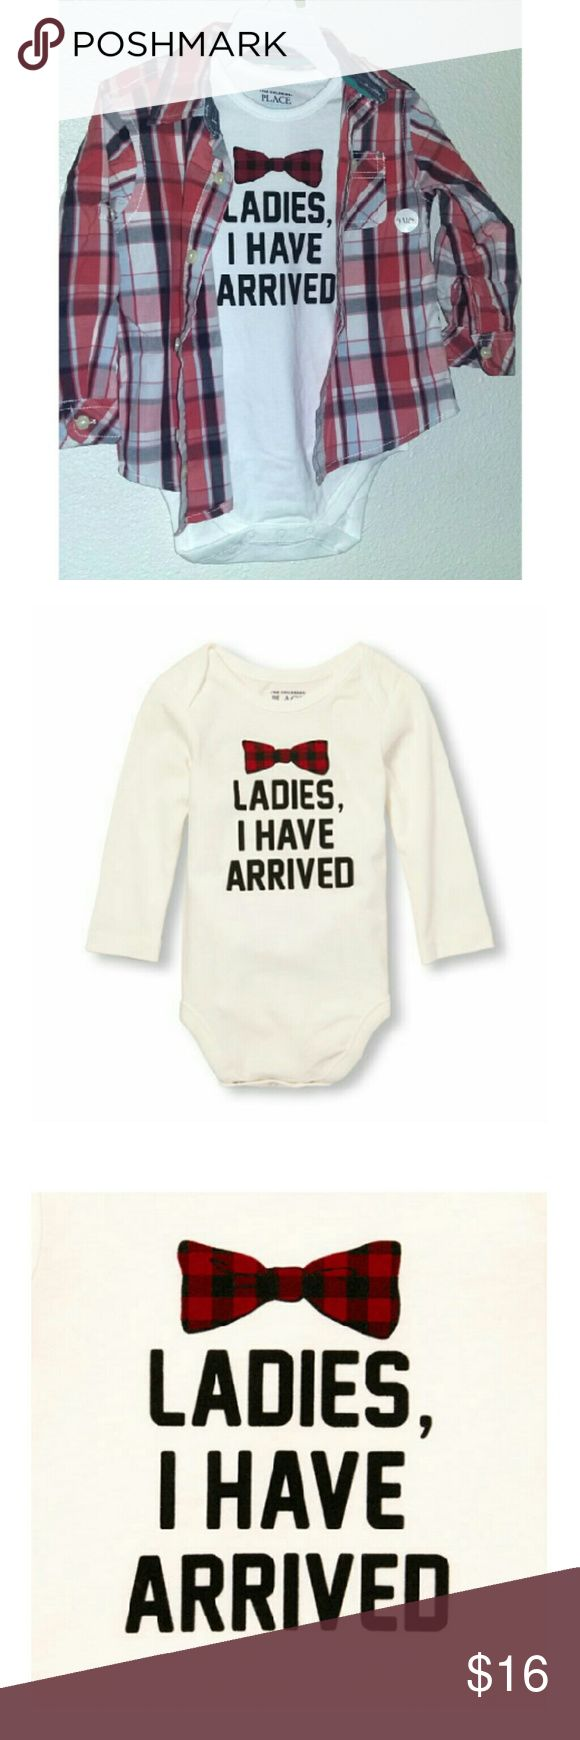 """2 Shirt Combo Ladies I have Arrived Comes with button up checkered shirt which can be long sleeve or made into short sleeve. Also comes with white long sleeve now the onesie that says """"ladies I have arrived"""".  Can be bought separately on other listings. Button up shirt is 24 months and onesie is 18 to 24 month's size. Button up shirt is tough skin brand and onesie is childrens place. Children's Place Shirts & Tops Button Down Shirts"""